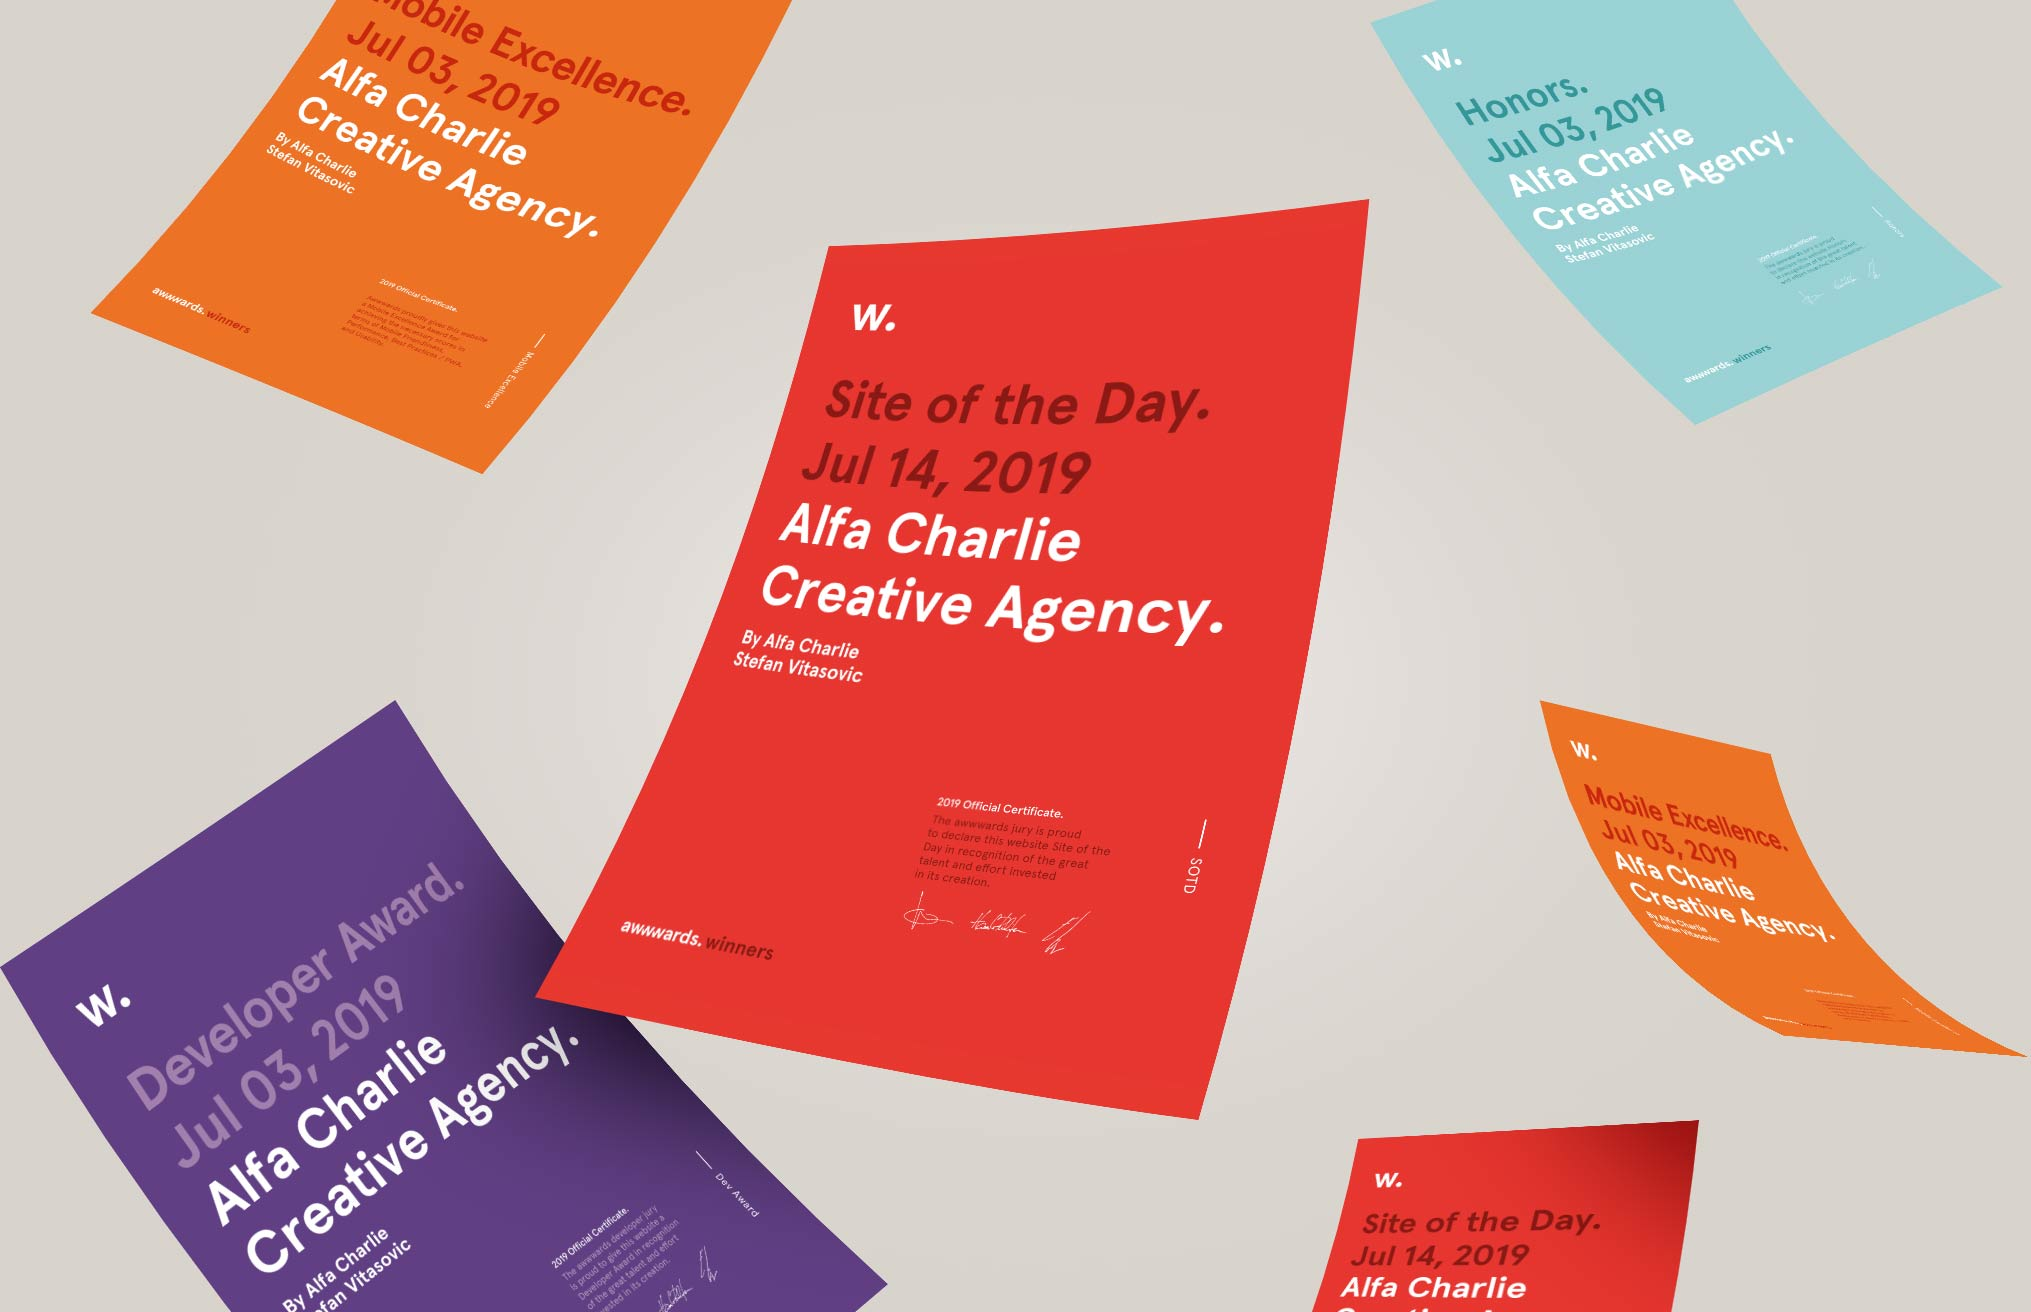 Alfa Charlie wins Site of the Day on Awwwards